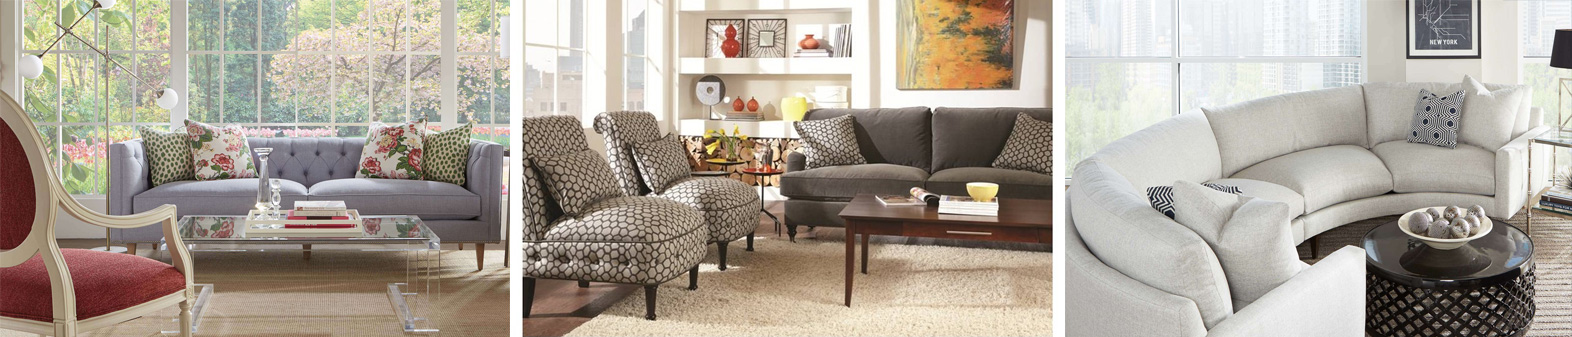 The Robin Bruce Brand Of Upholstered Furniture Is Also Manufactured By Rowe  Furniture In Virginia. Why Would Rowe Have A Separately Labeled Line That  They ...